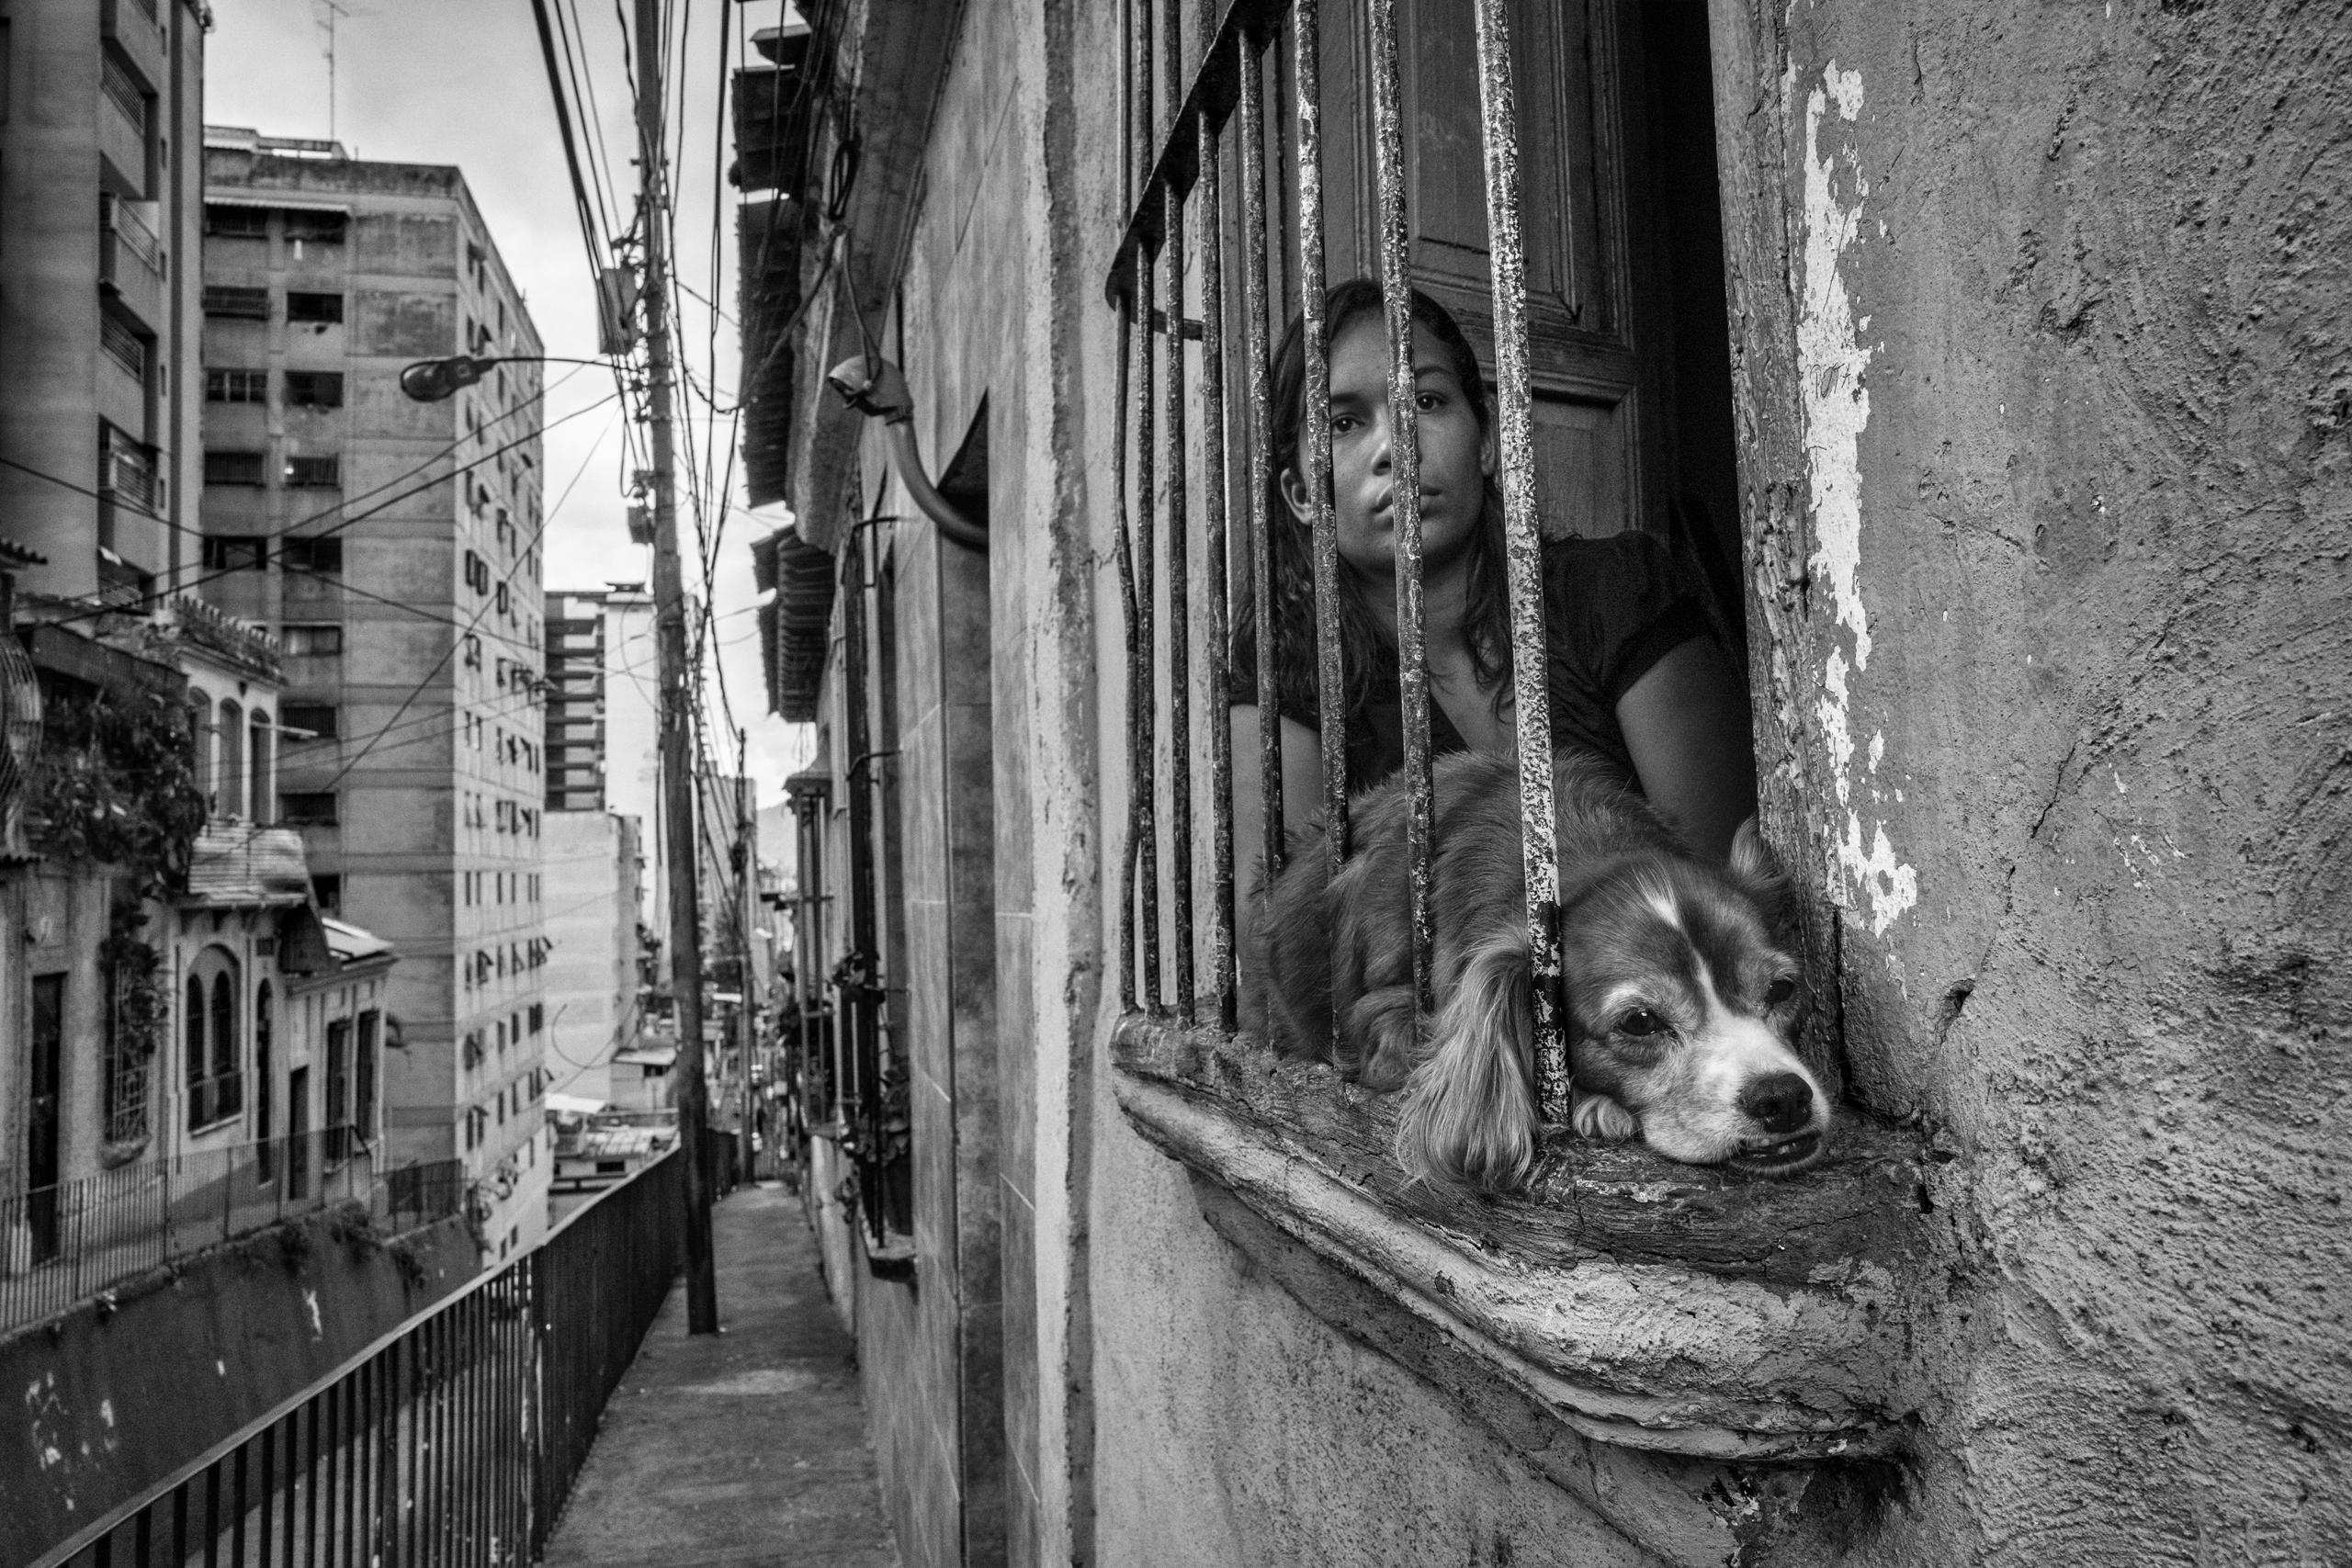 Bendiré looks out the window of her apartment in Caracas, which she shares with six other families.  After five p.m.,  she does not go outside fearing crime in the neighborhood, June 2016.